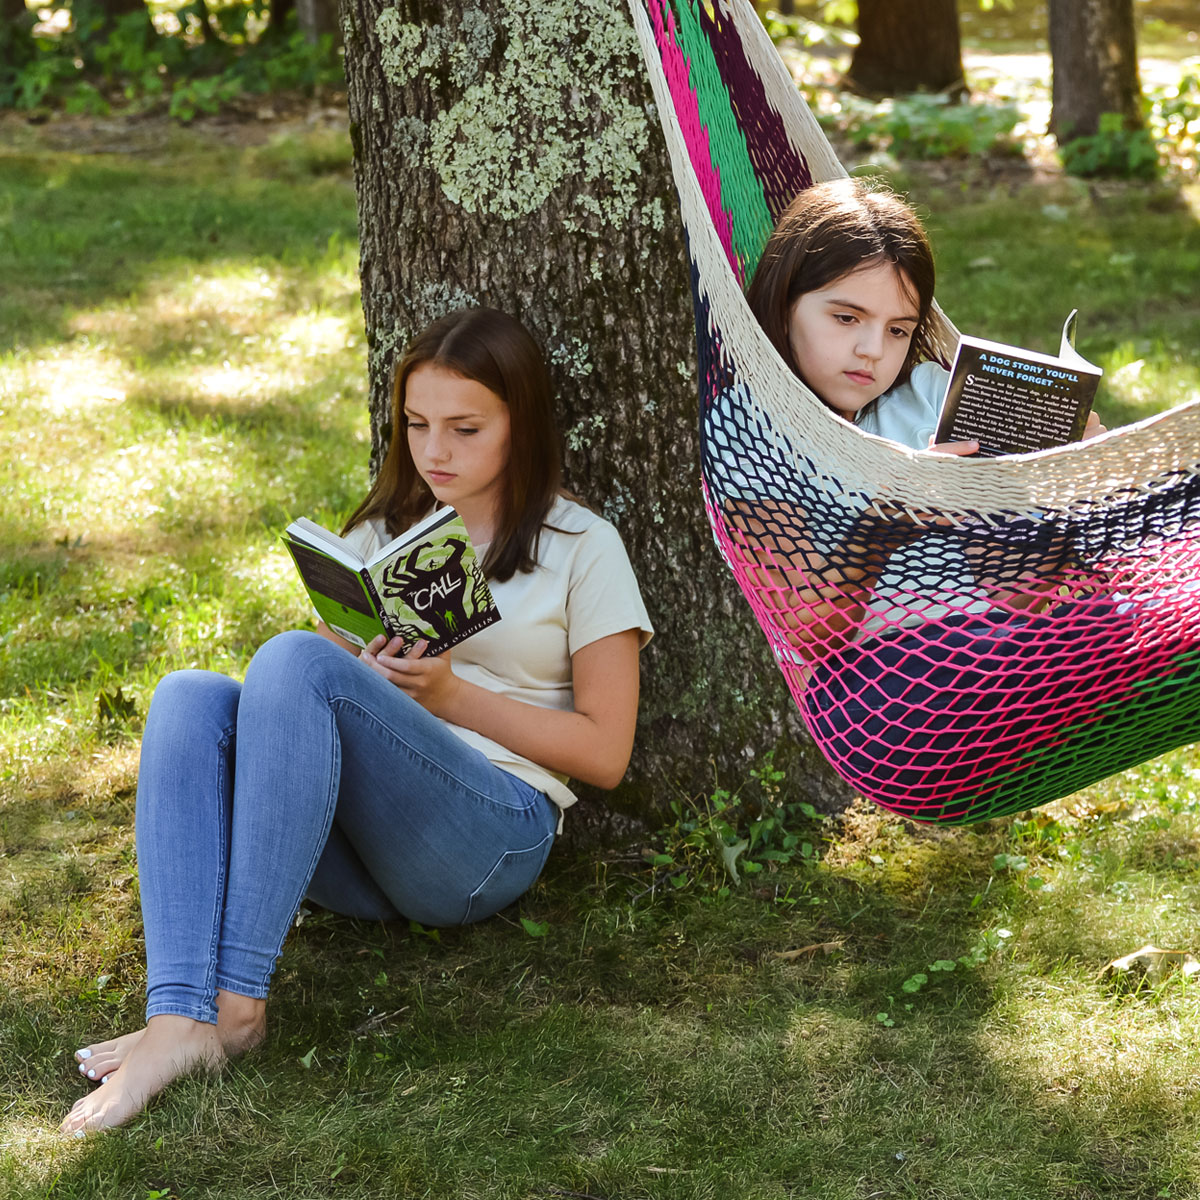 students outside in yard on grass and in hammock reading